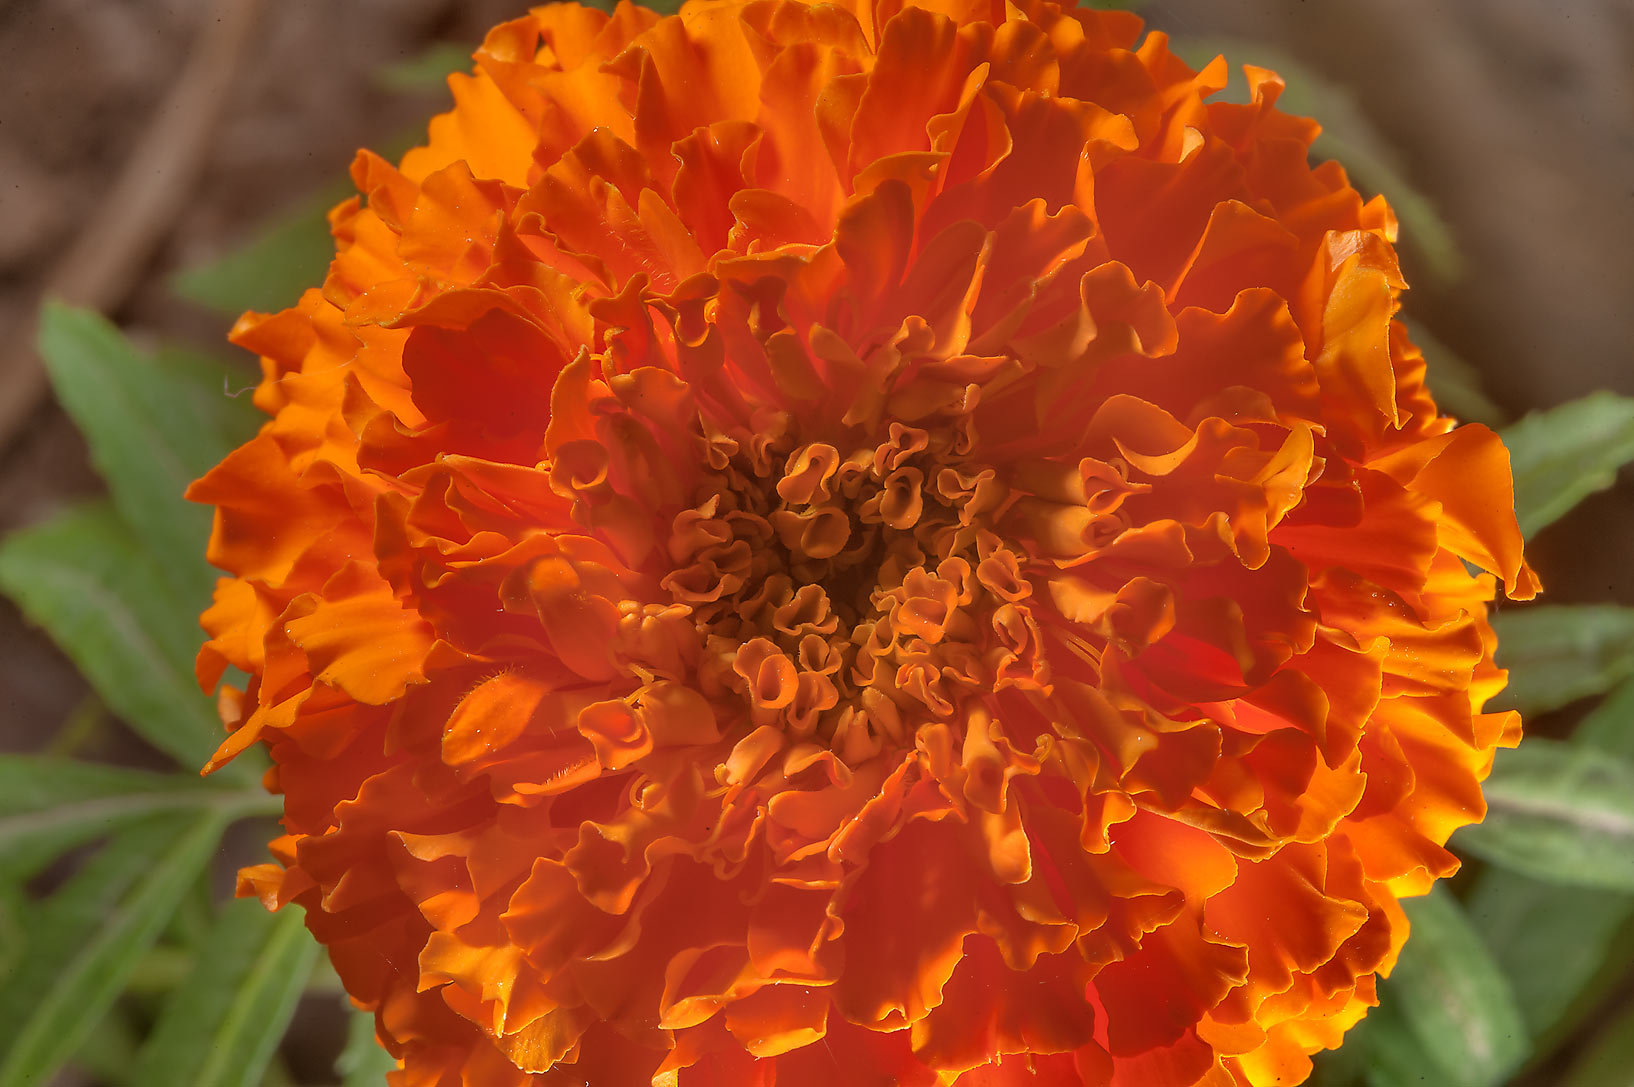 Mexican marigold (Tagetes erecta) flower planted...City Park. Ruwais, Northern Qatar